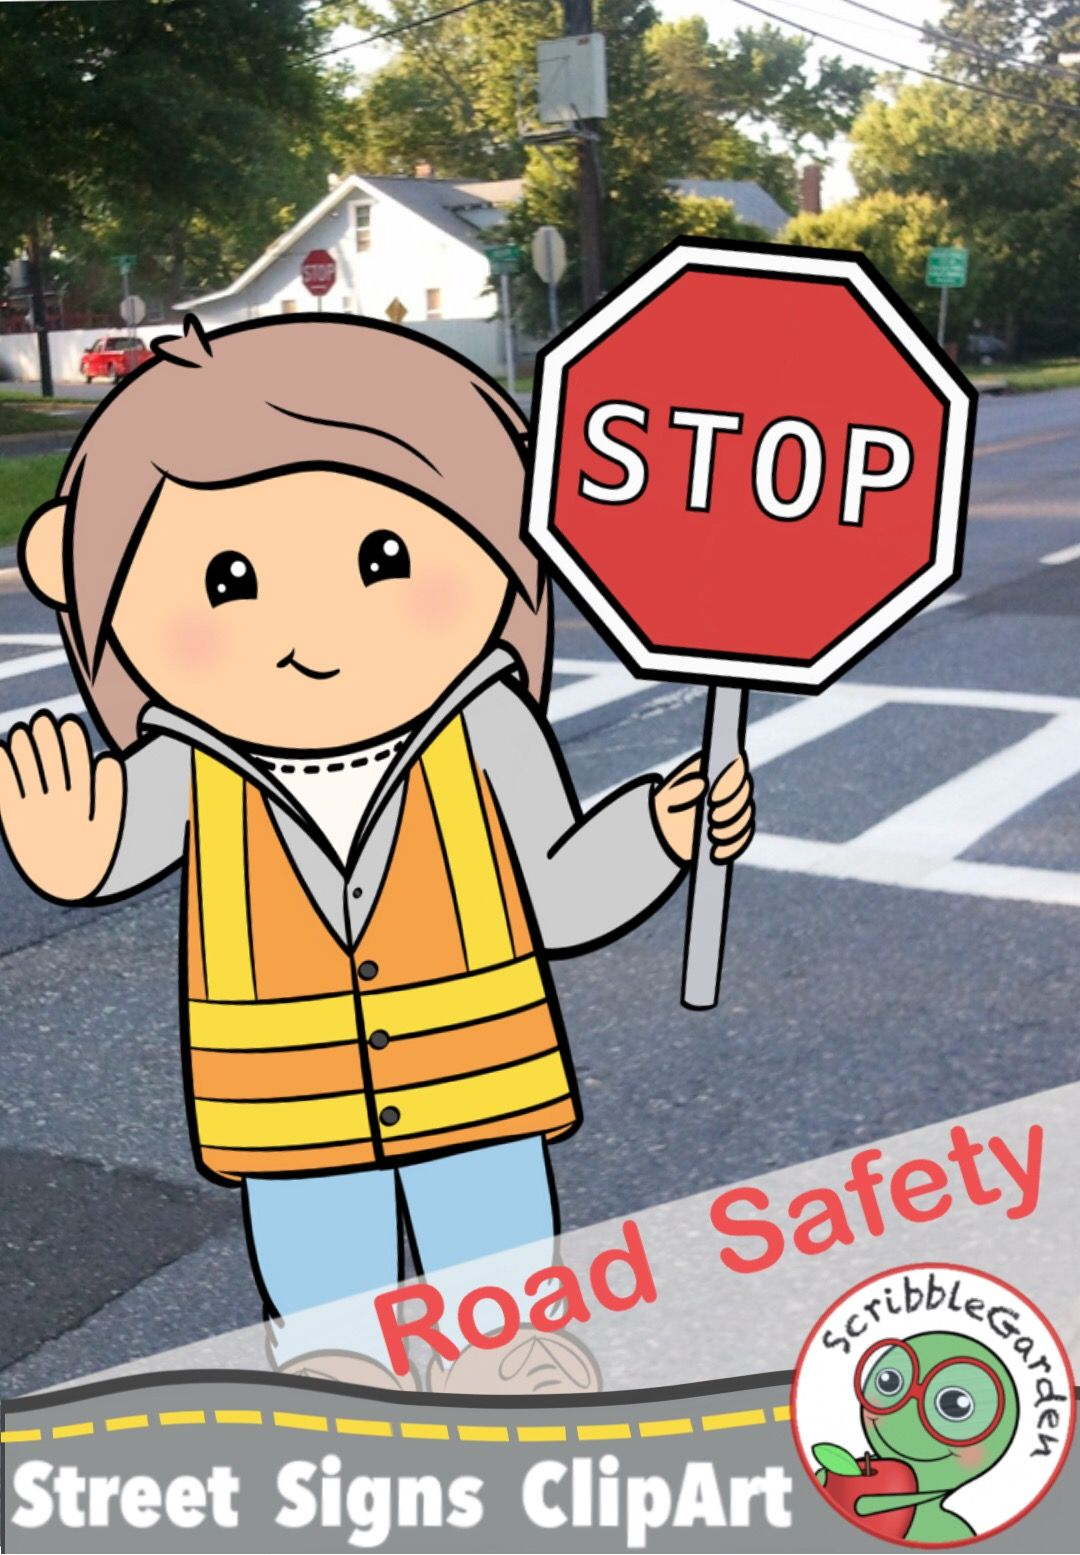 Road Safety Street Signs Clipart Road Safety Street Signs Clip Art